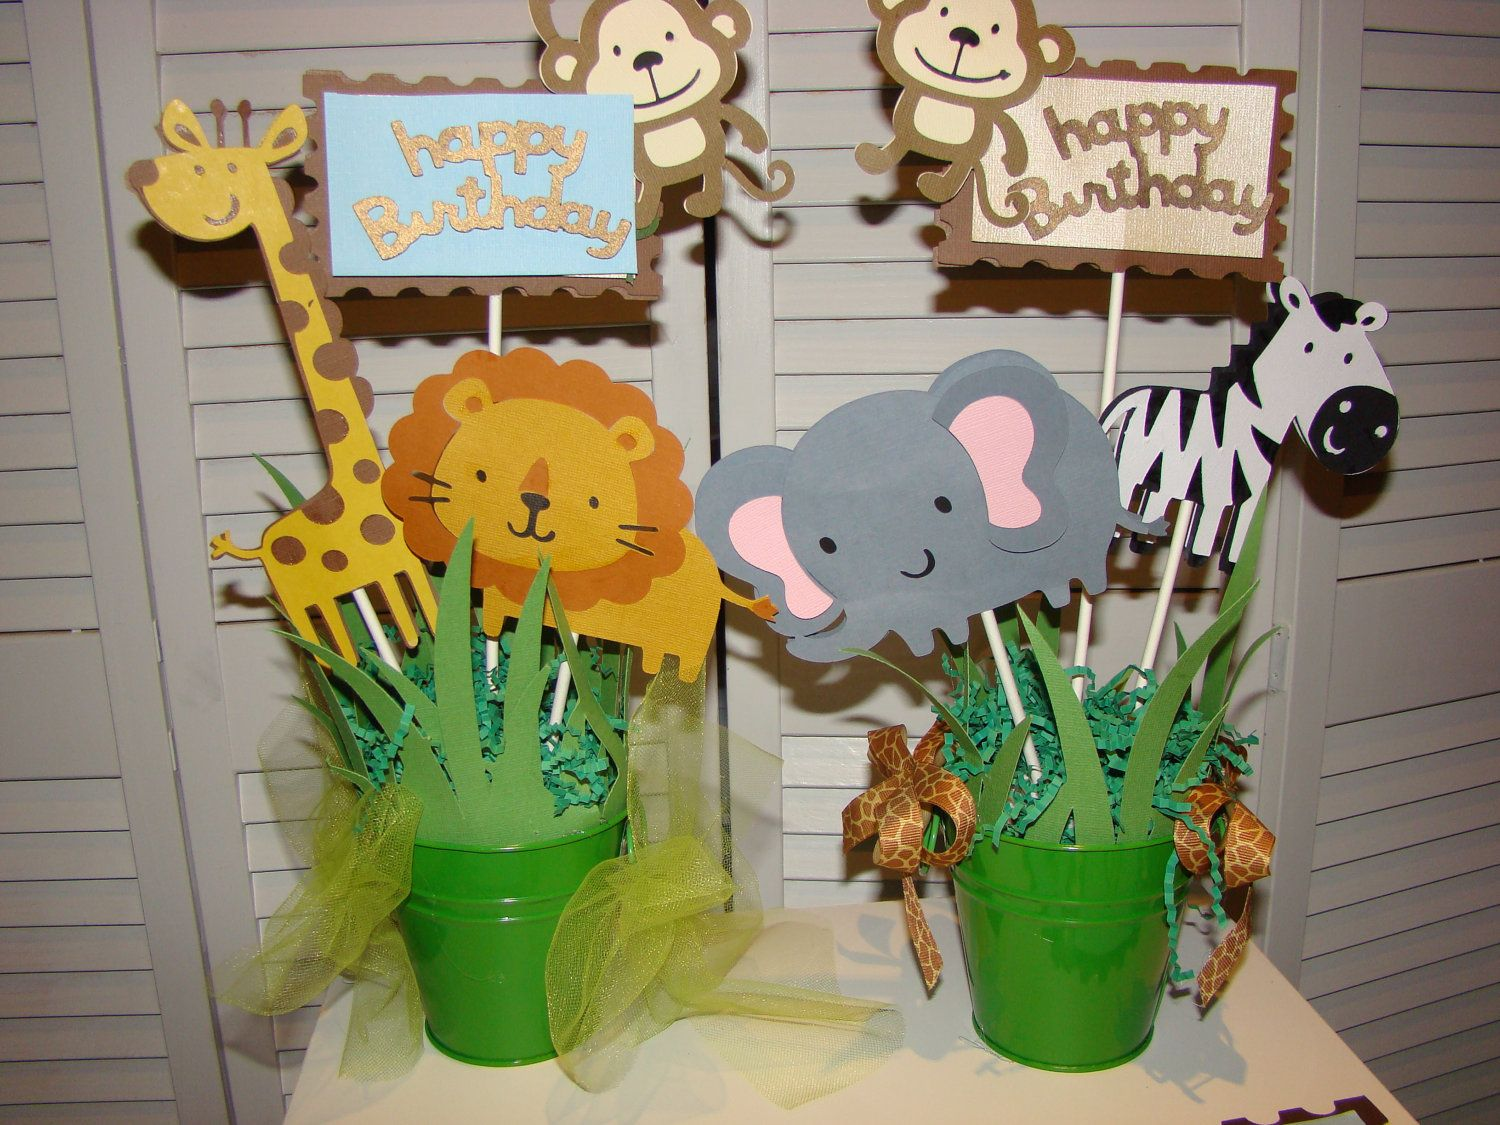 Jungle table decorations adapt idea for discovery center for Baby birthday decoration images